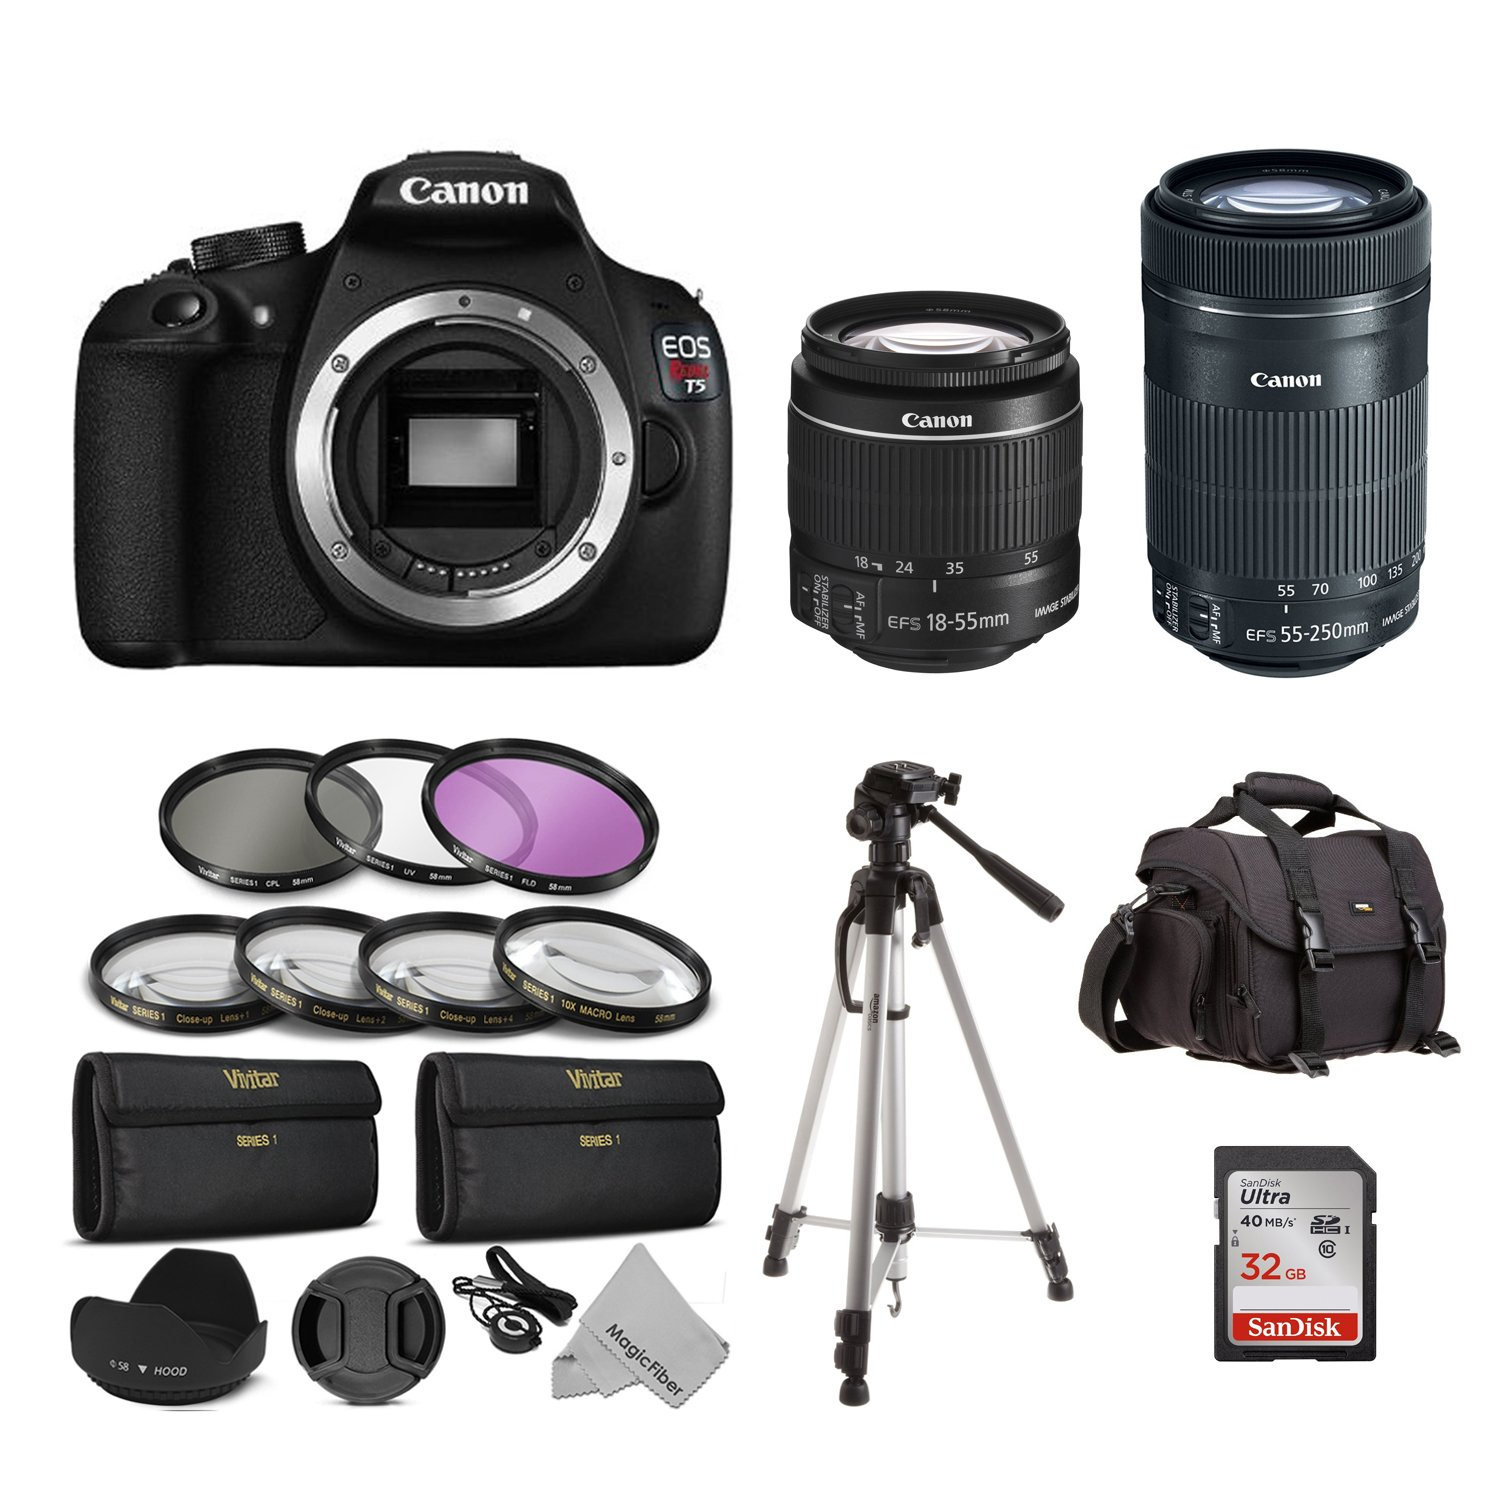 Canon EOS Rebel T5 Digital SLR Camera - $550 With 18-55mm and 55-250mm STM Lens + 16 Piece Deluxe Accessory Kit Bundle